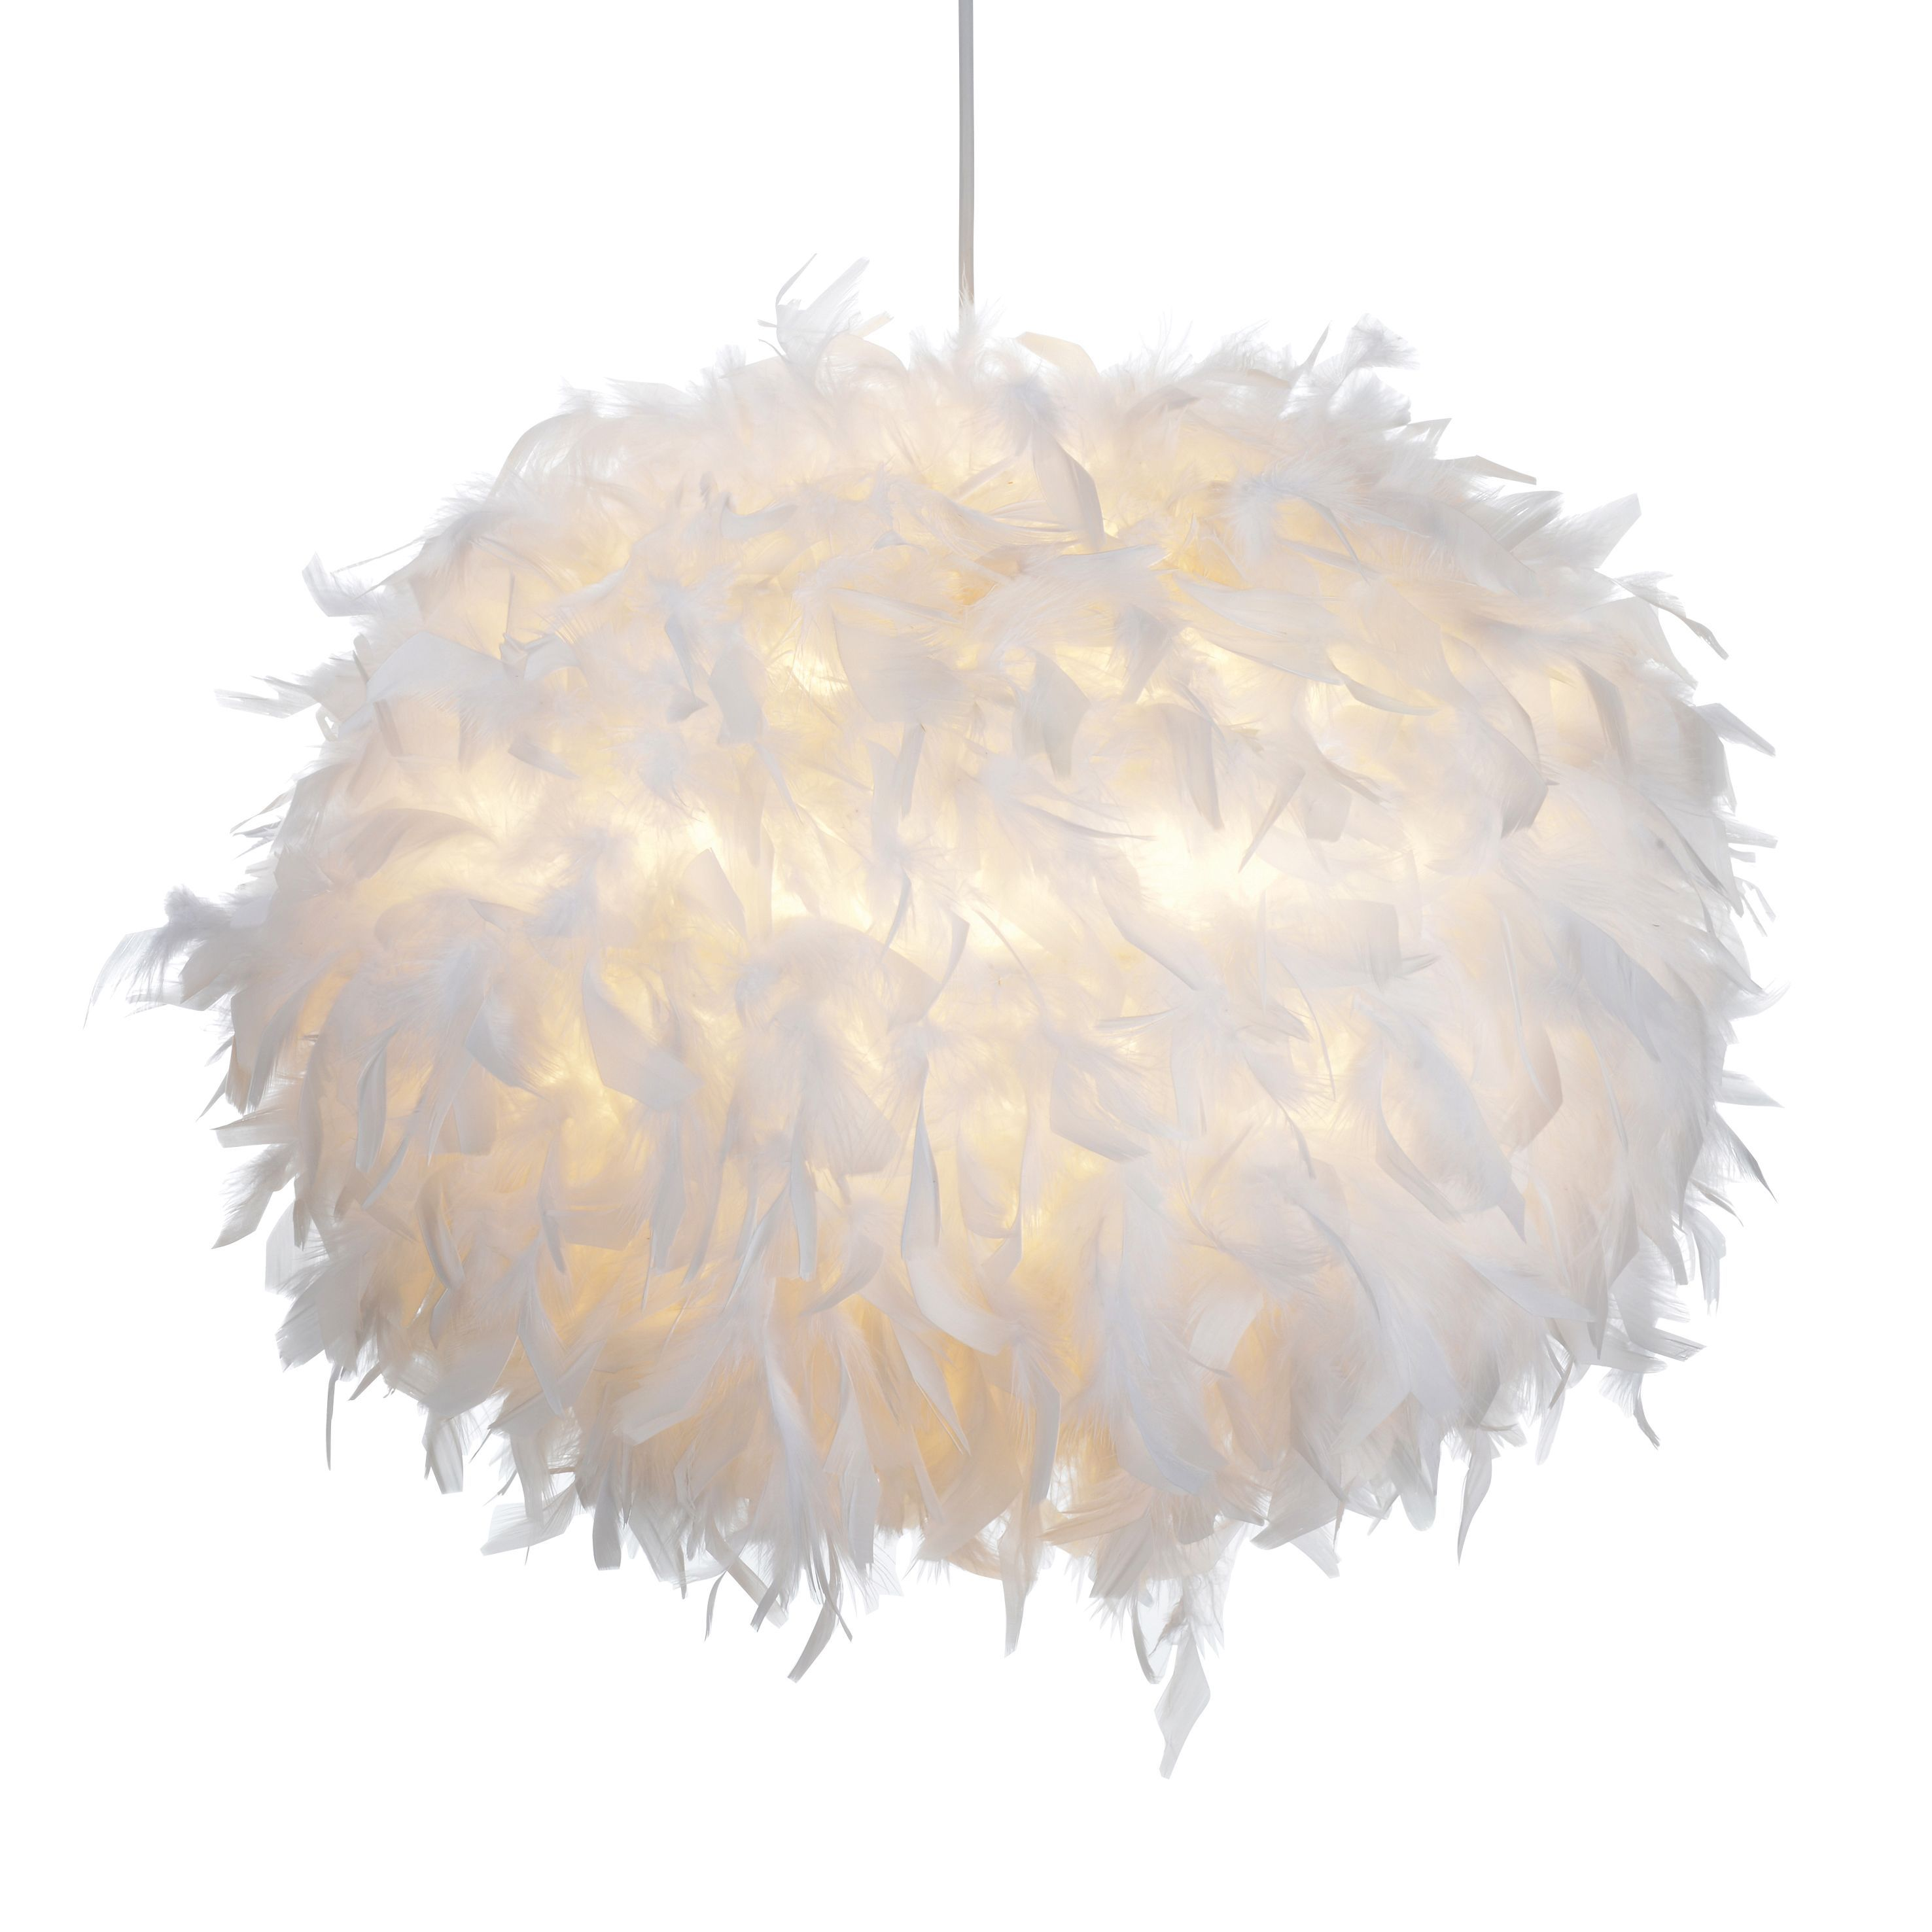 Feathered Lamp Shade